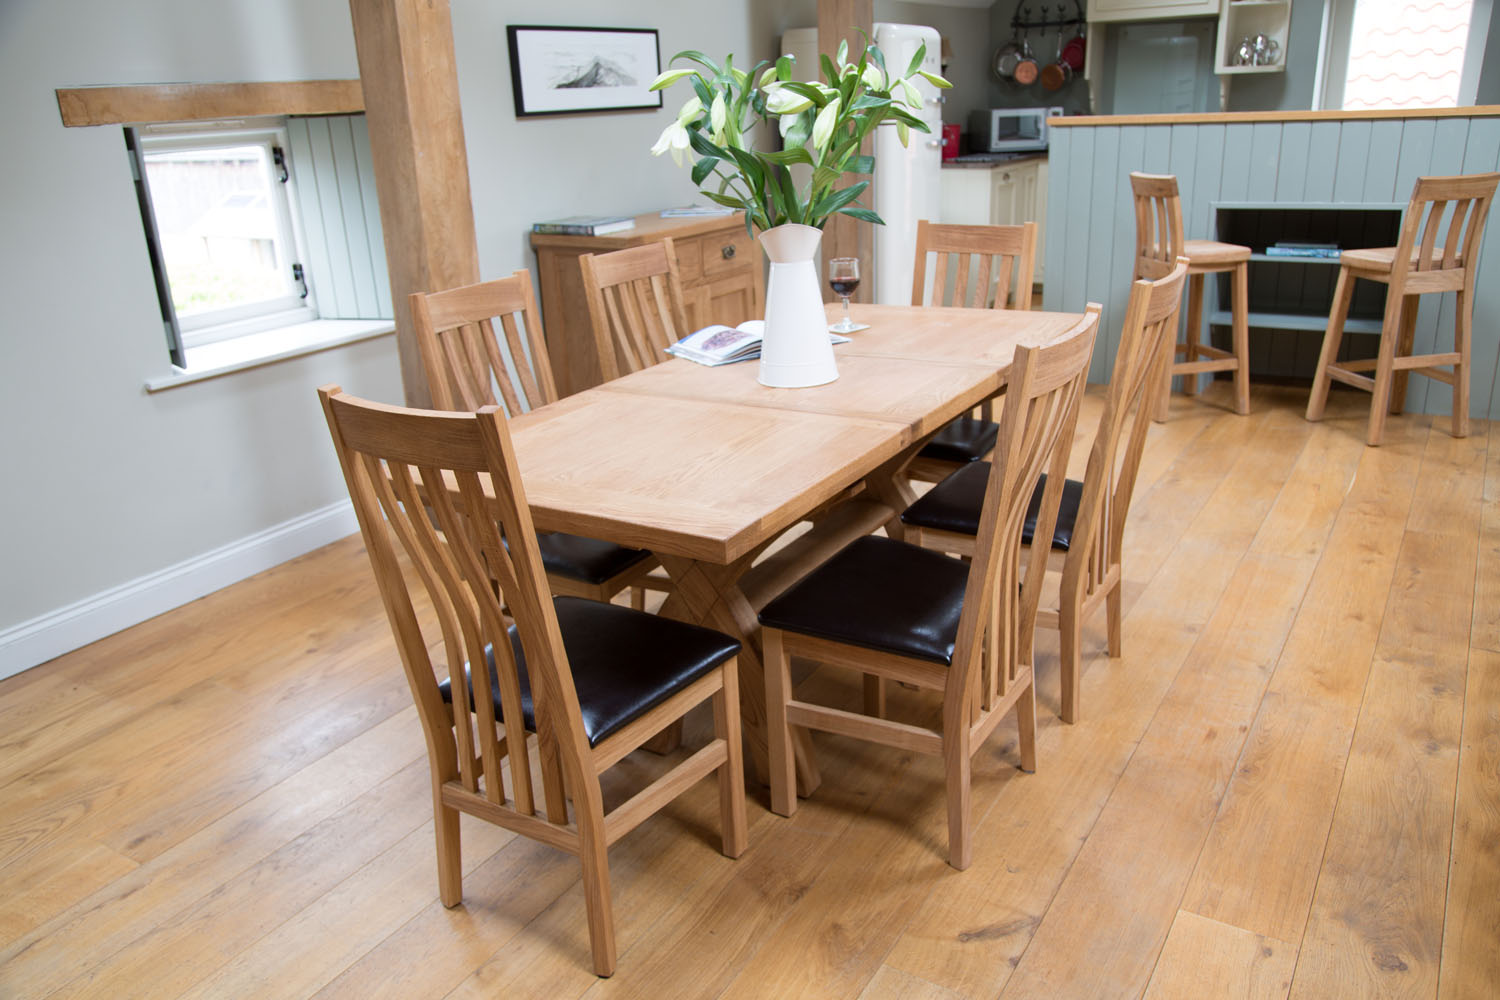 & 6 Seater Extending Oak Dining Table Set from Top Furniture